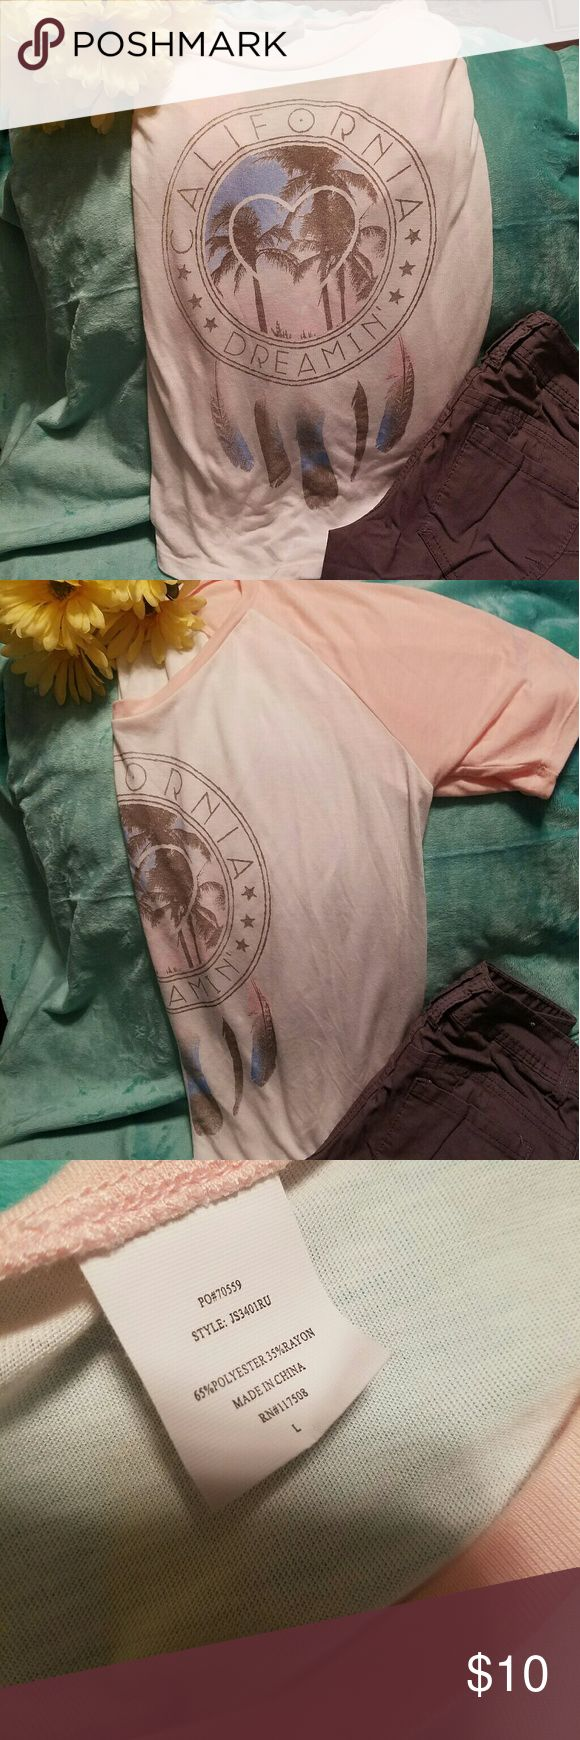 Gold Rush California Dreaming Short Sleeve Shirt Brand: Gold Rush  Size: Large- Can fit like a medium (I got it oversized to look a bit more flowy and slouched) Condition: Amazing condition, worn once Gold rush Tops Tees - Short Sleeve